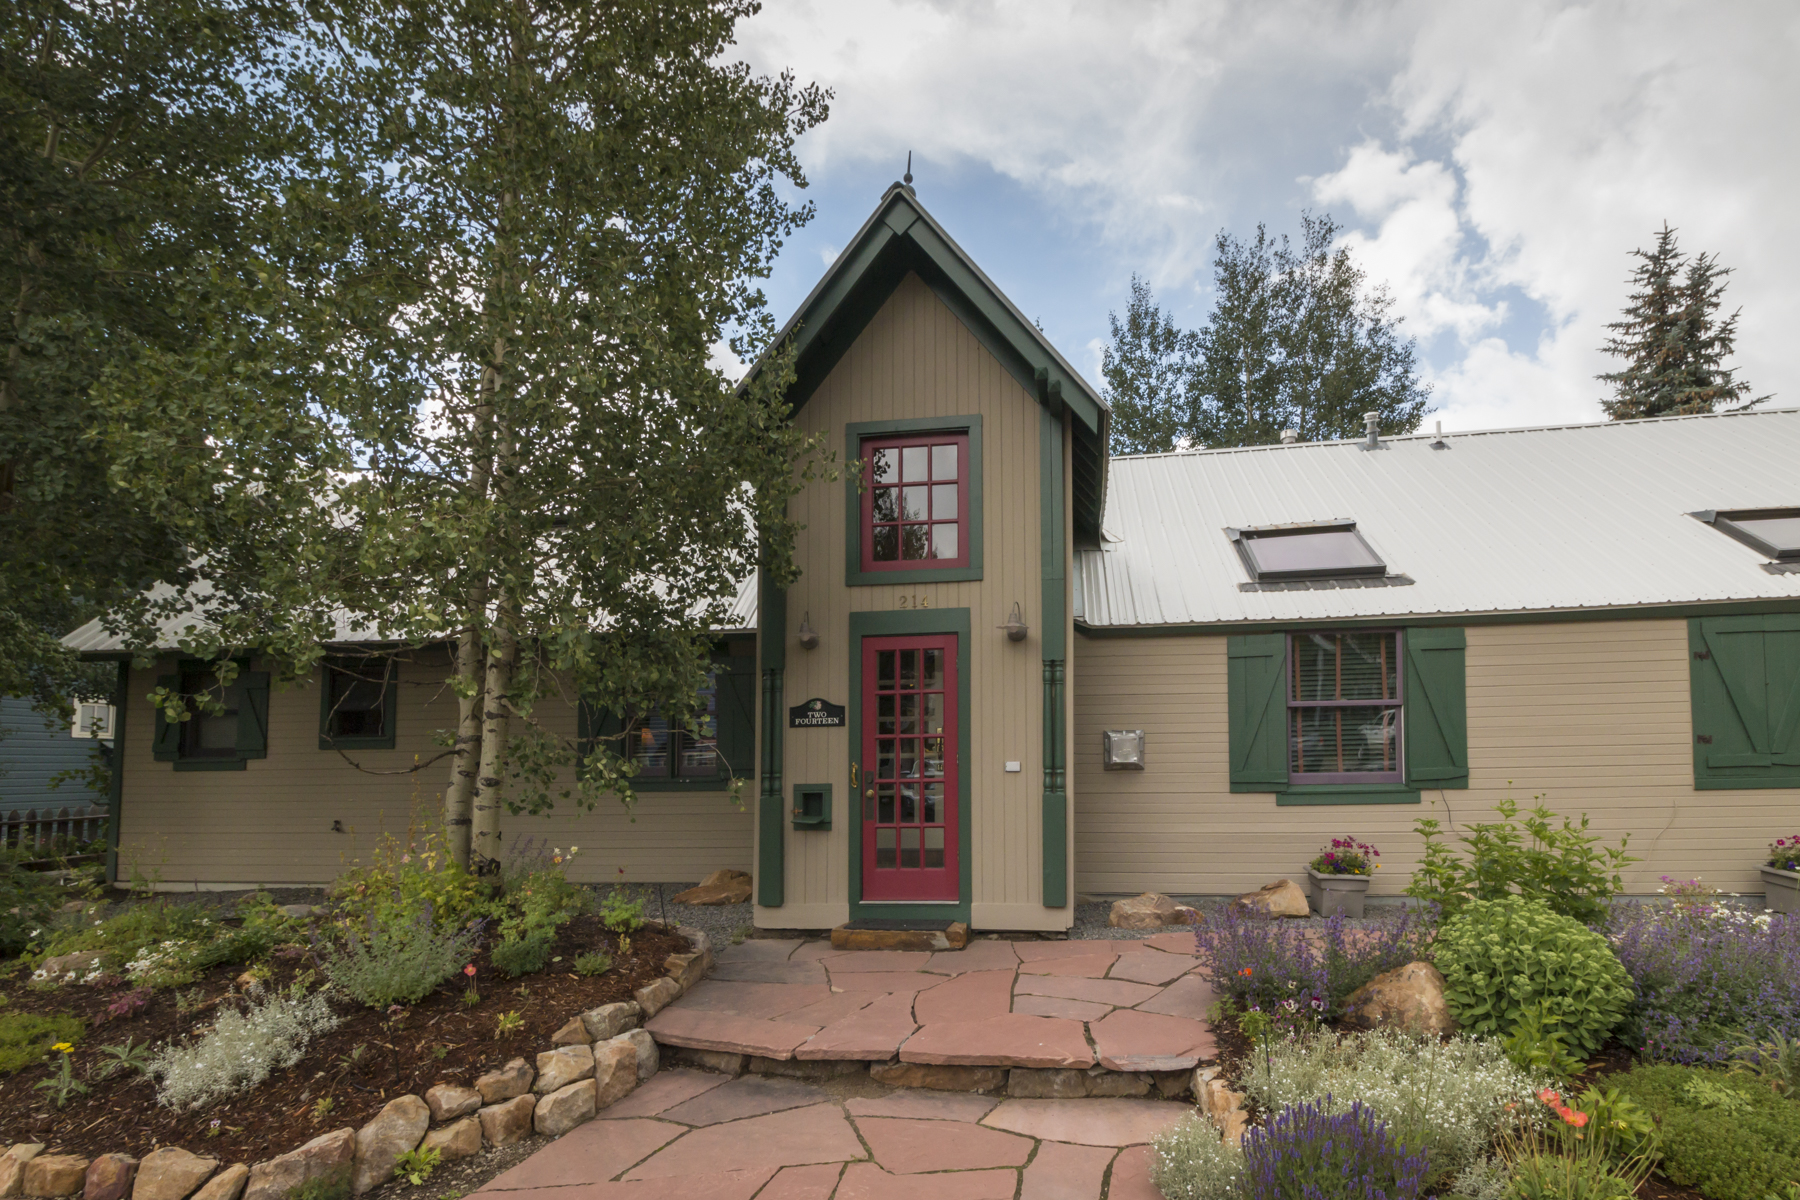 Single Family Home for Sale at Unique Crested Butte Gem 214 TEOCALLI AVENUE Crested Butte, Colorado, 81224 United States